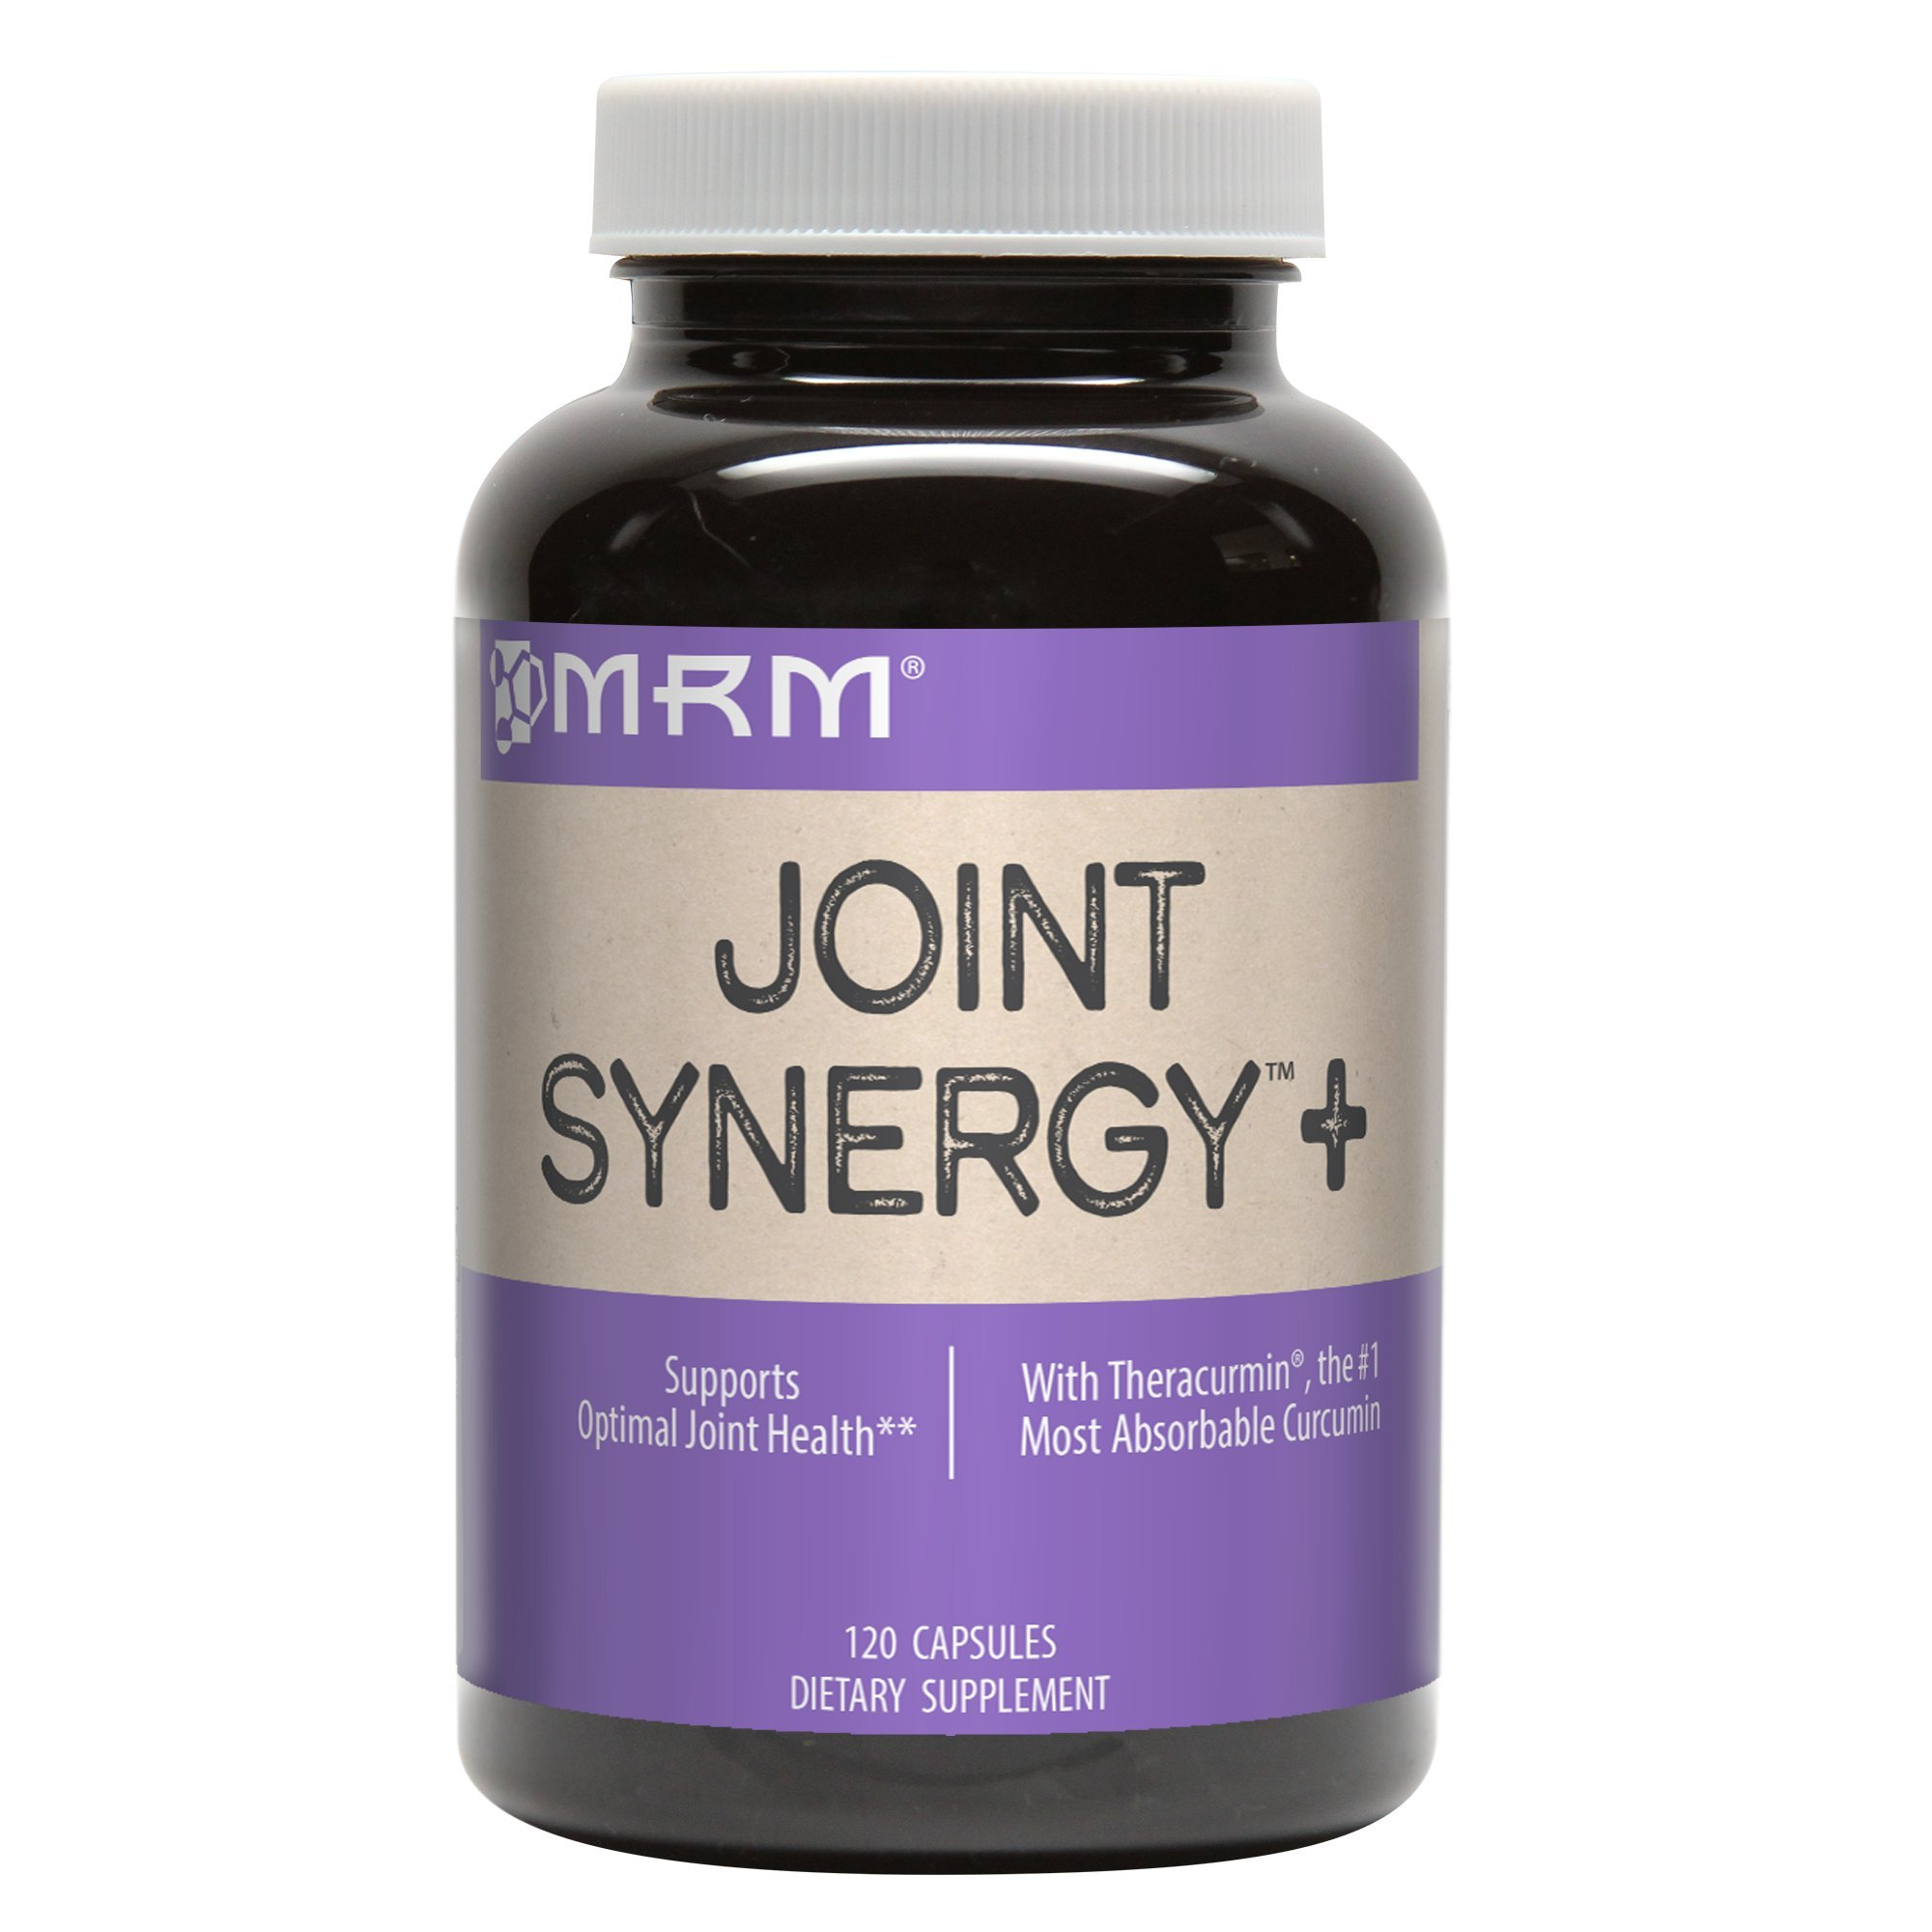 MRM Condition Specific Joint Synergy Plus Capsules, 120-Count Bottle